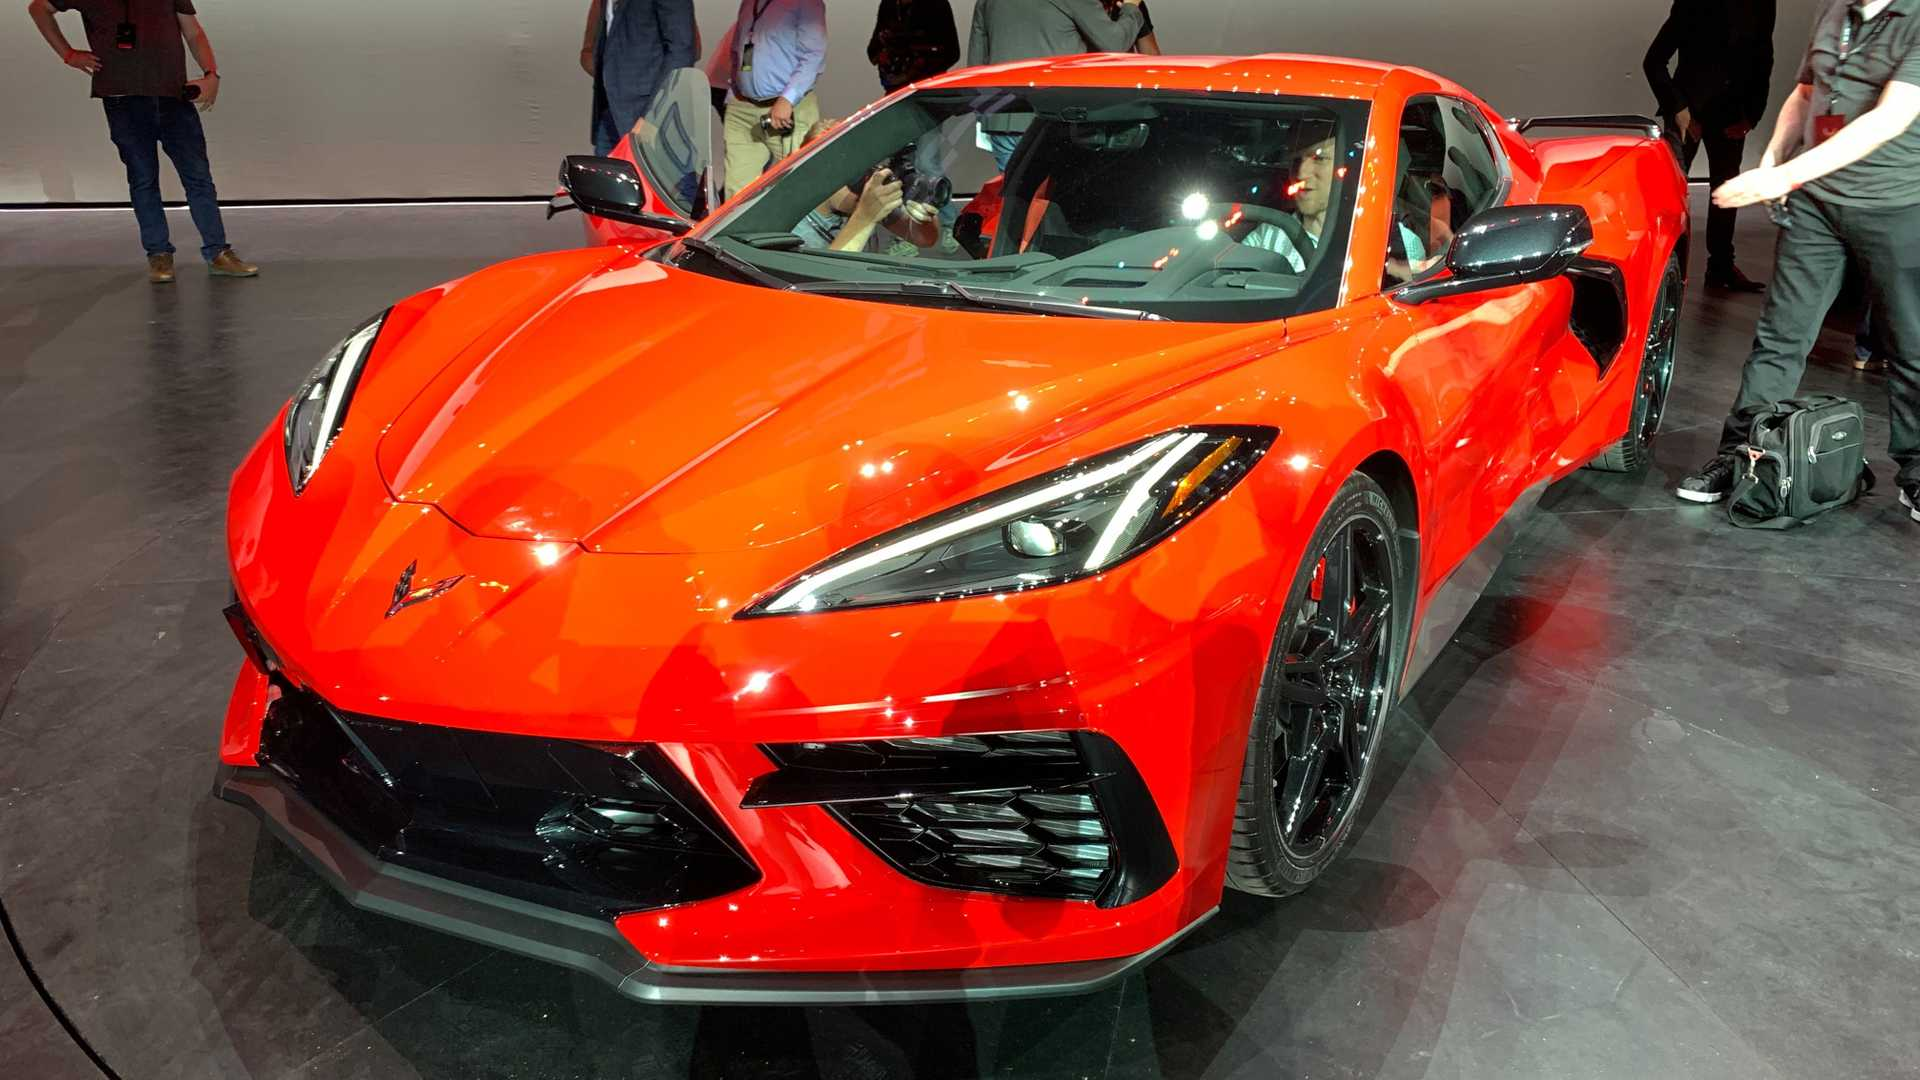 64 New 2020 Chevrolet Corvette Mid Engine Review And Release Date